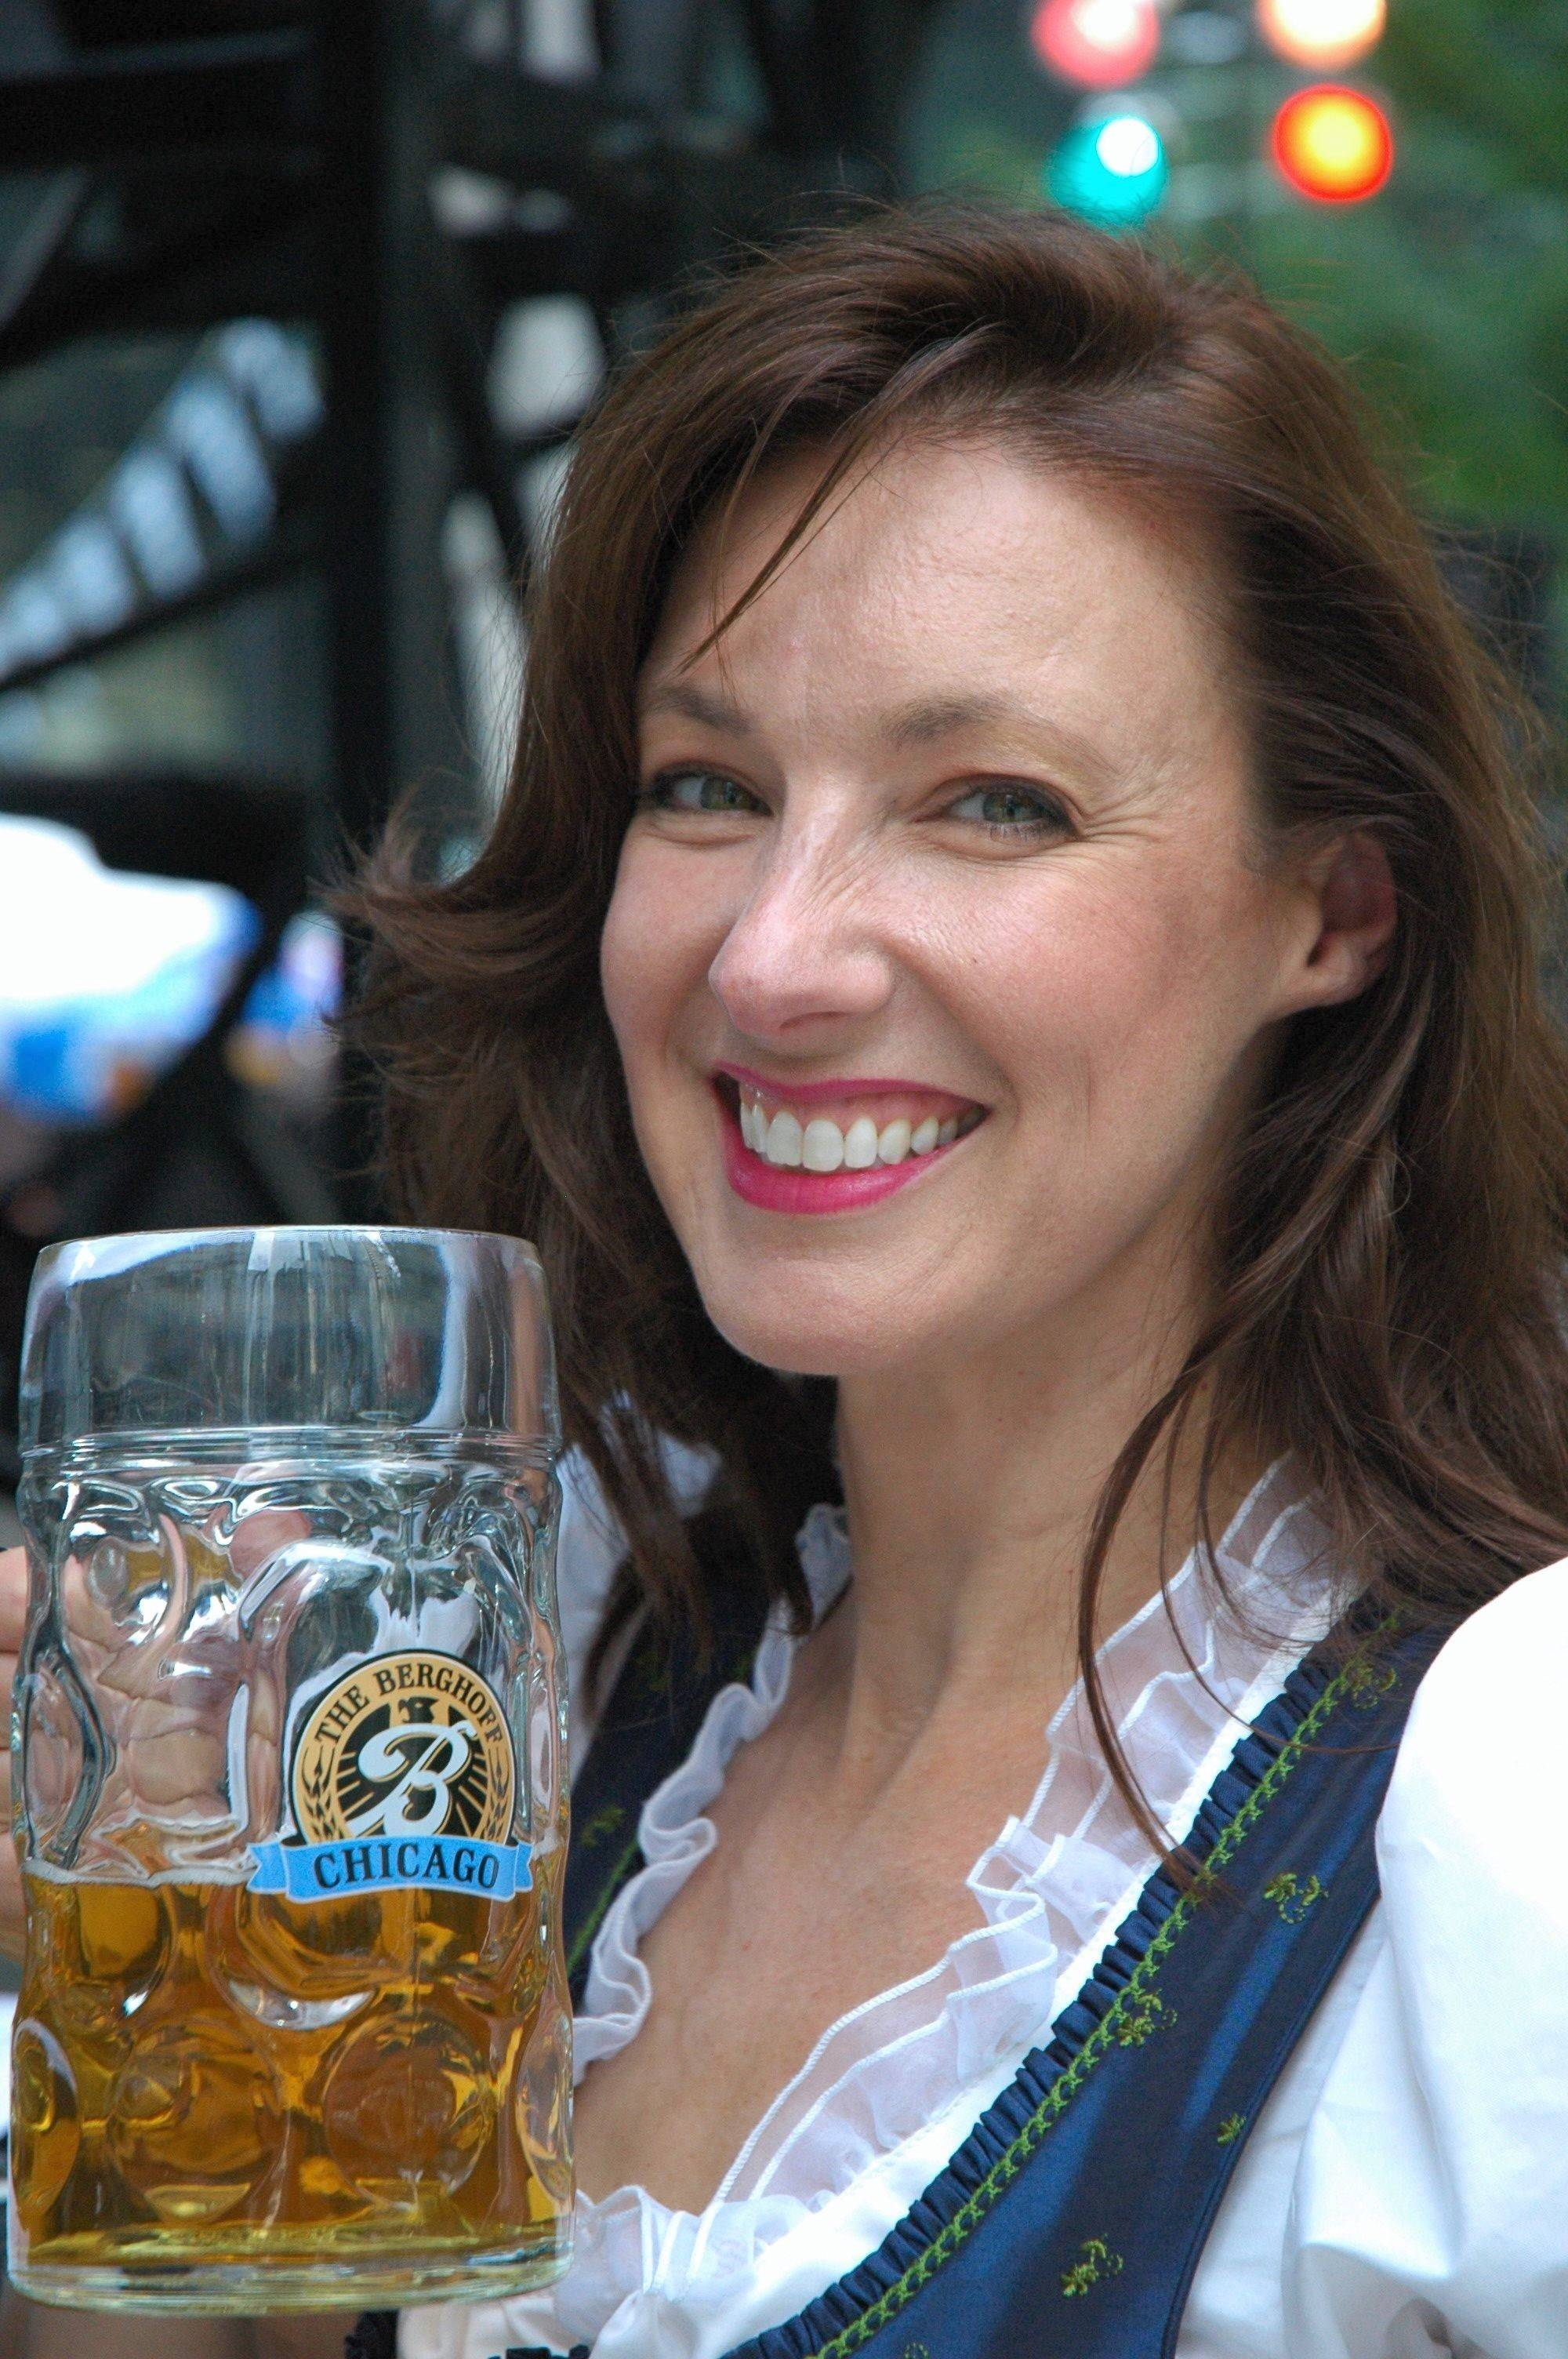 Berghoff's 29th annual Oktoberfest is a spirited outdoor celebration that will take place Wednesday through Friday, Sept. 10-12, in Chicago.